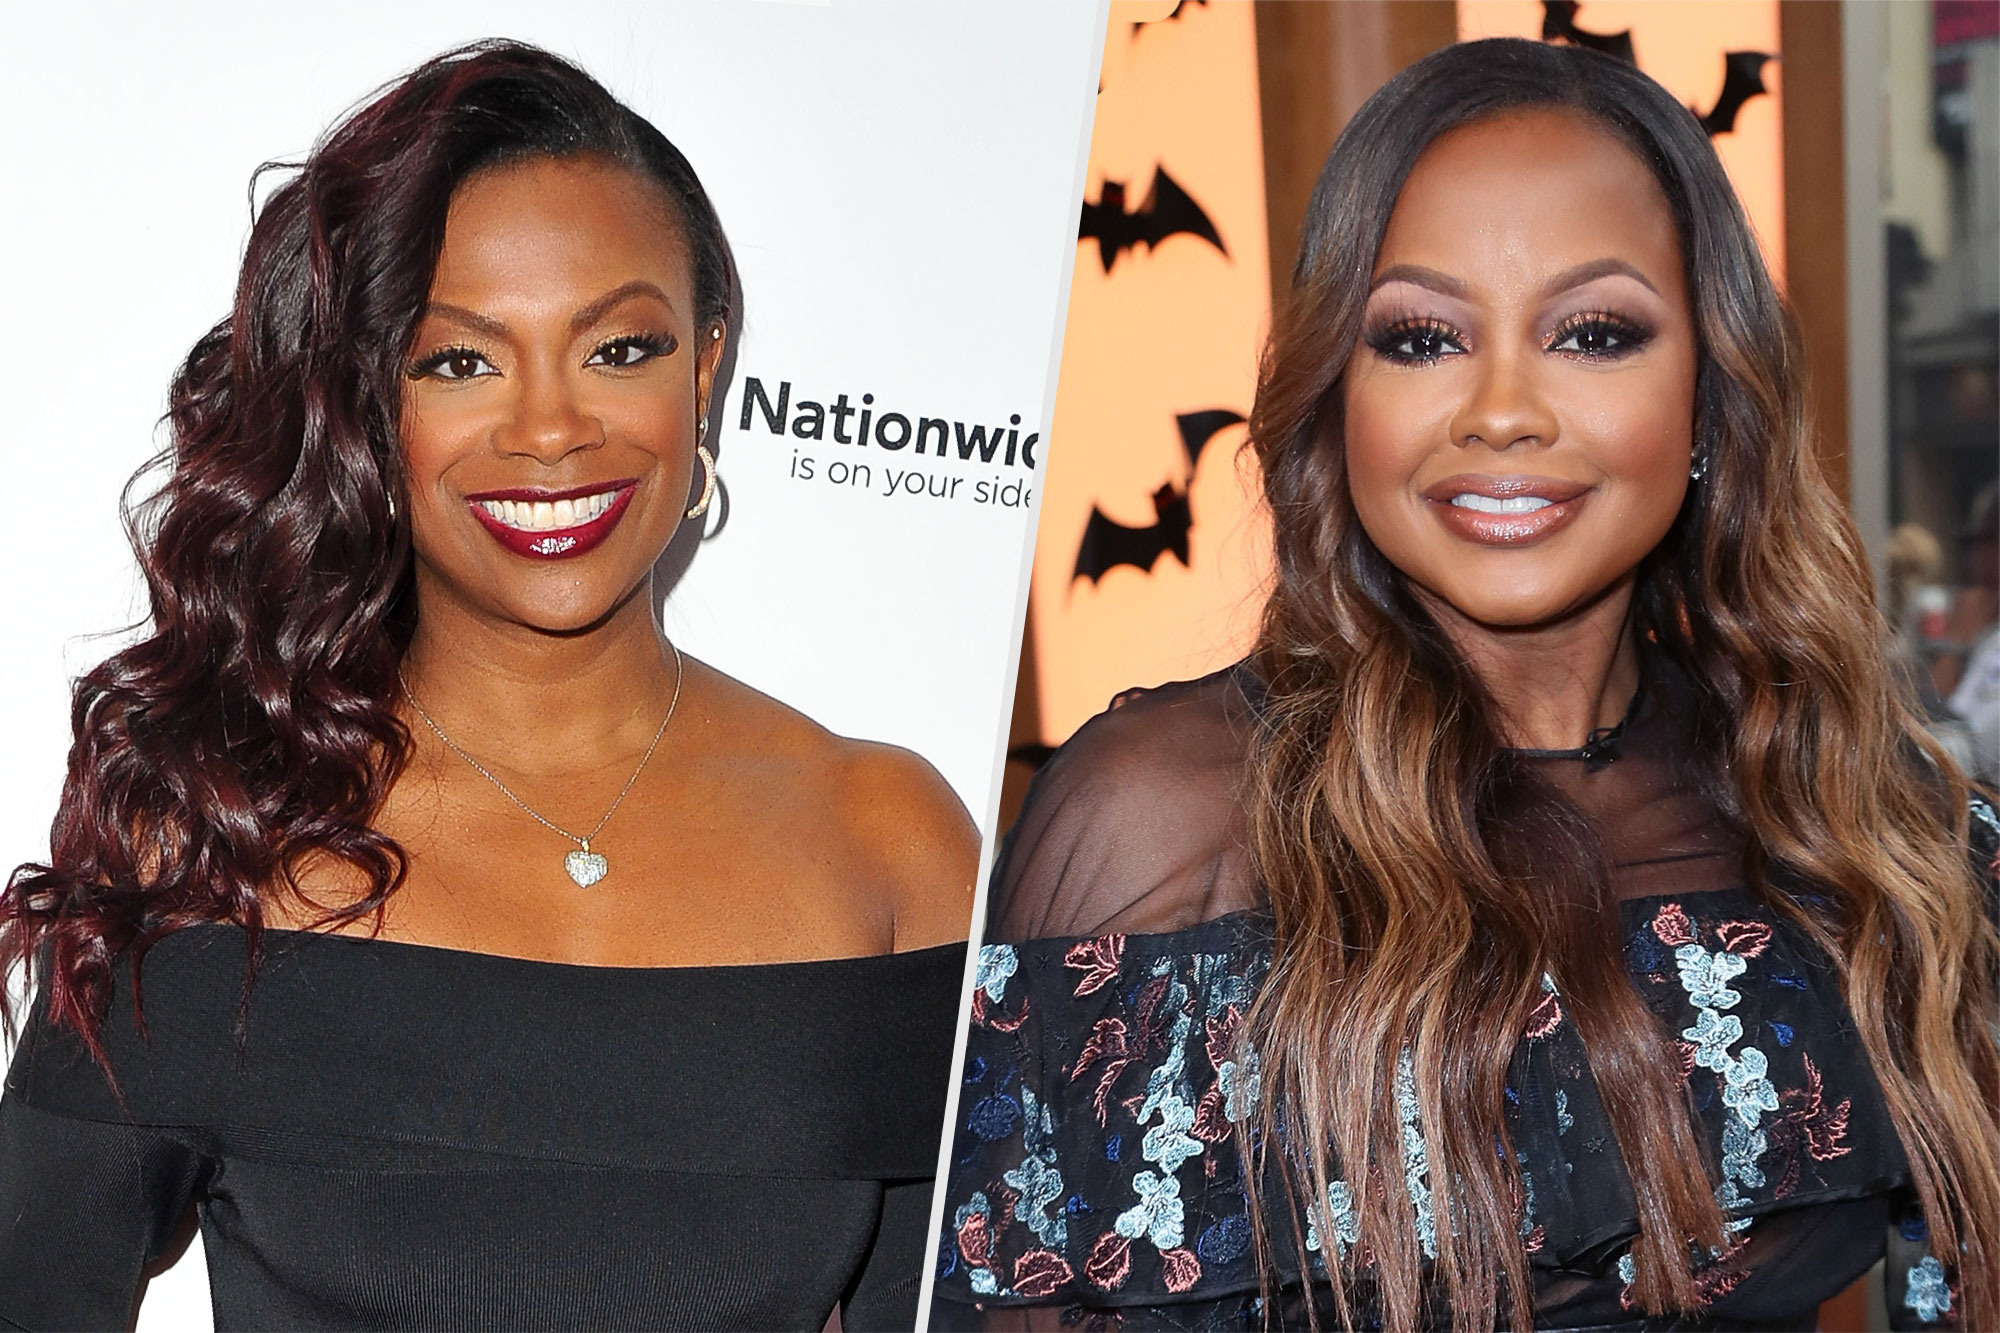 Some RHOA Fans Believe That Kandi Burruss Has Outgrown The Other Housewives